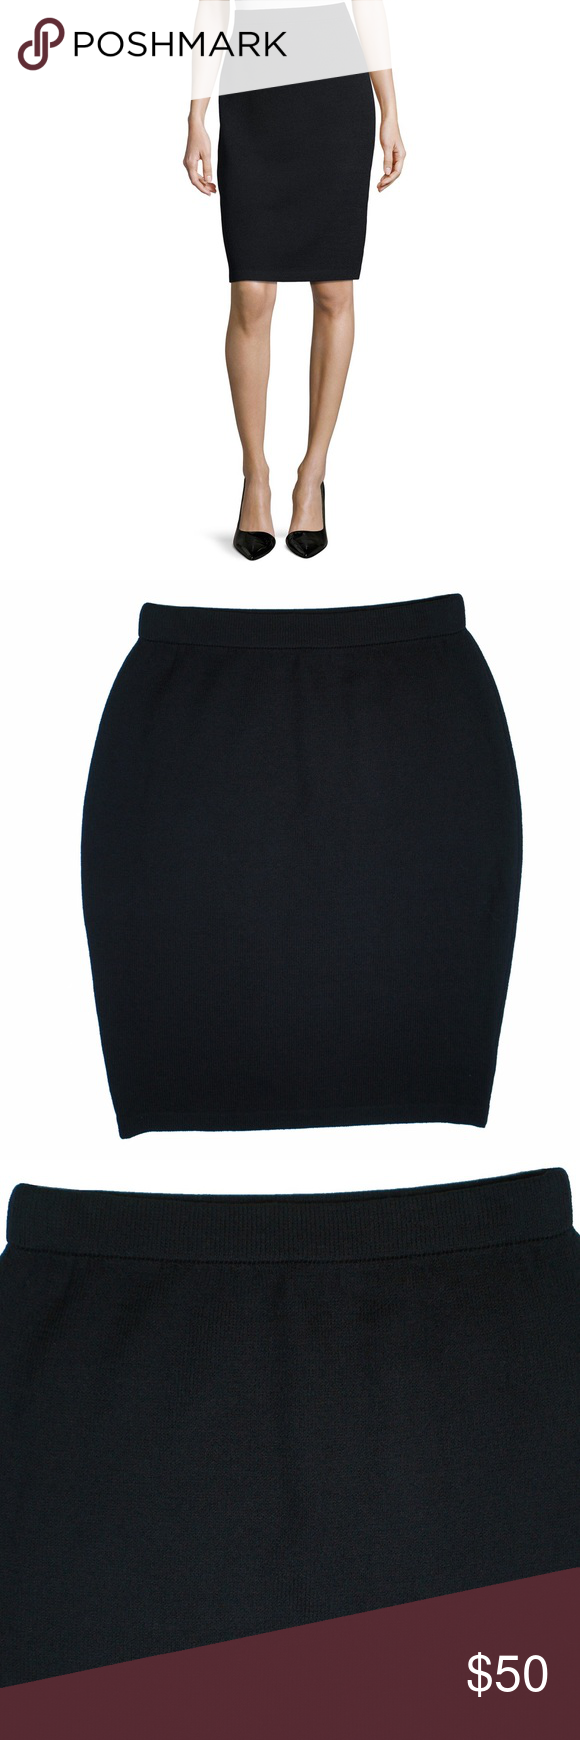 """ST. JOHN Black Santana Knit Pencil Skirt Mint condition! This black Santana knit pencil skirt from St John features an elastic banded waist and is unlined. Measures: waist (stretches) 26-32"""", hips: 38"""", total length: 23"""" St. John Skirts Pencil"""